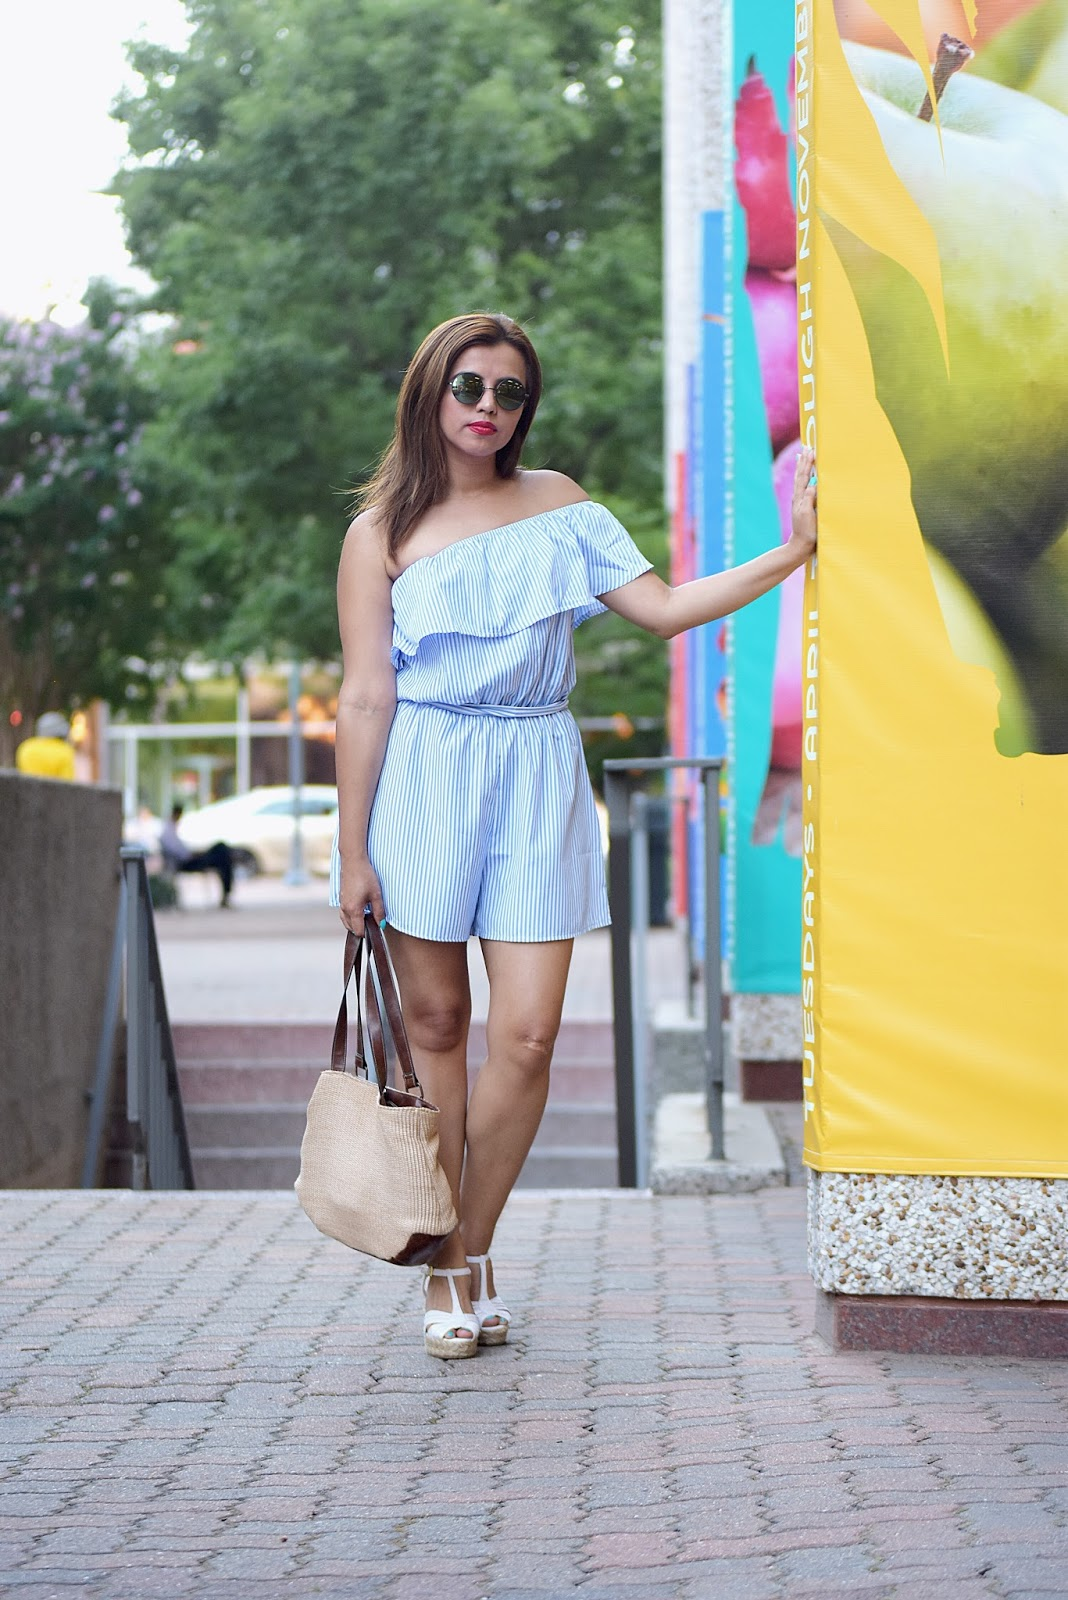 Wearing: Romper: SheIn Wedges: American Eagle Bag: Target